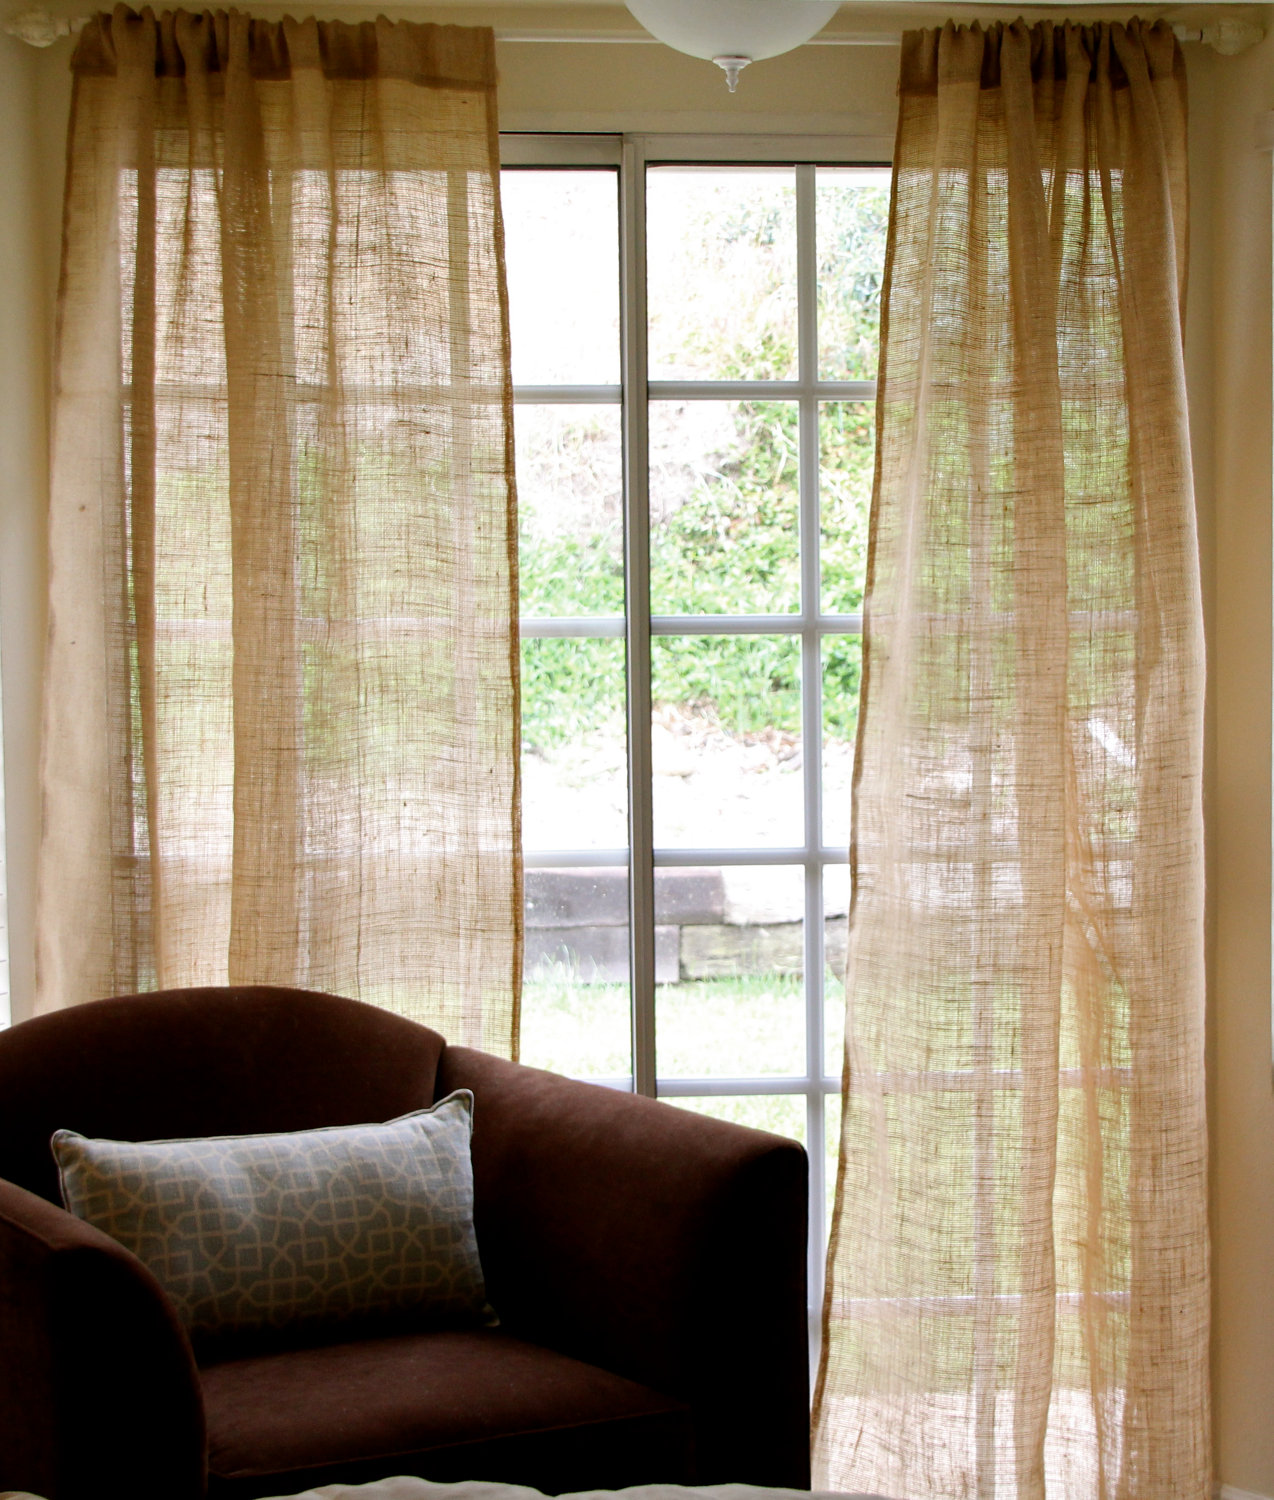 Burlap window treatments - No Sew Burlap Curtains